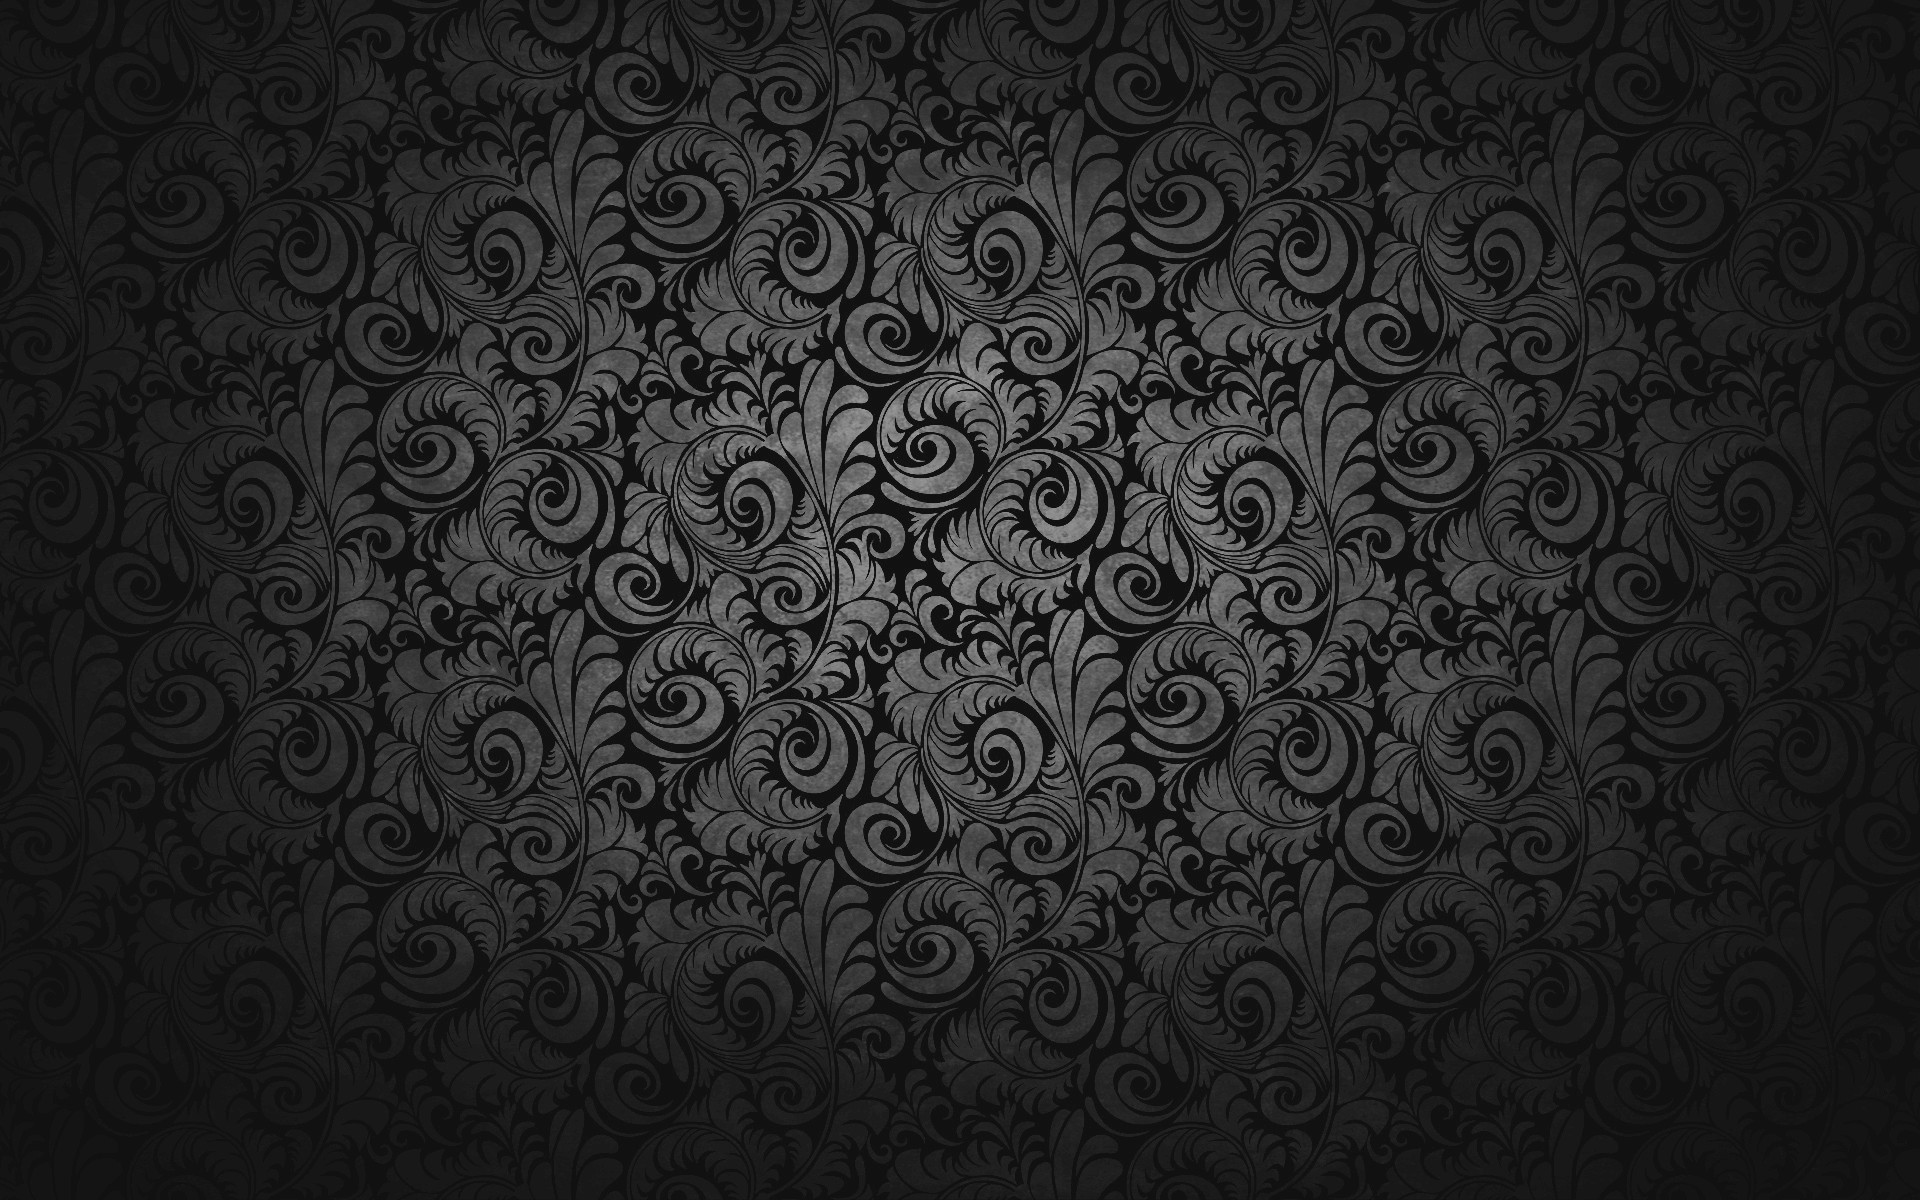 30 HD Black Wallpapers : black wallpaper 28 from newevolutiondesigns.com size 1920 x 1200 jpeg 568kB